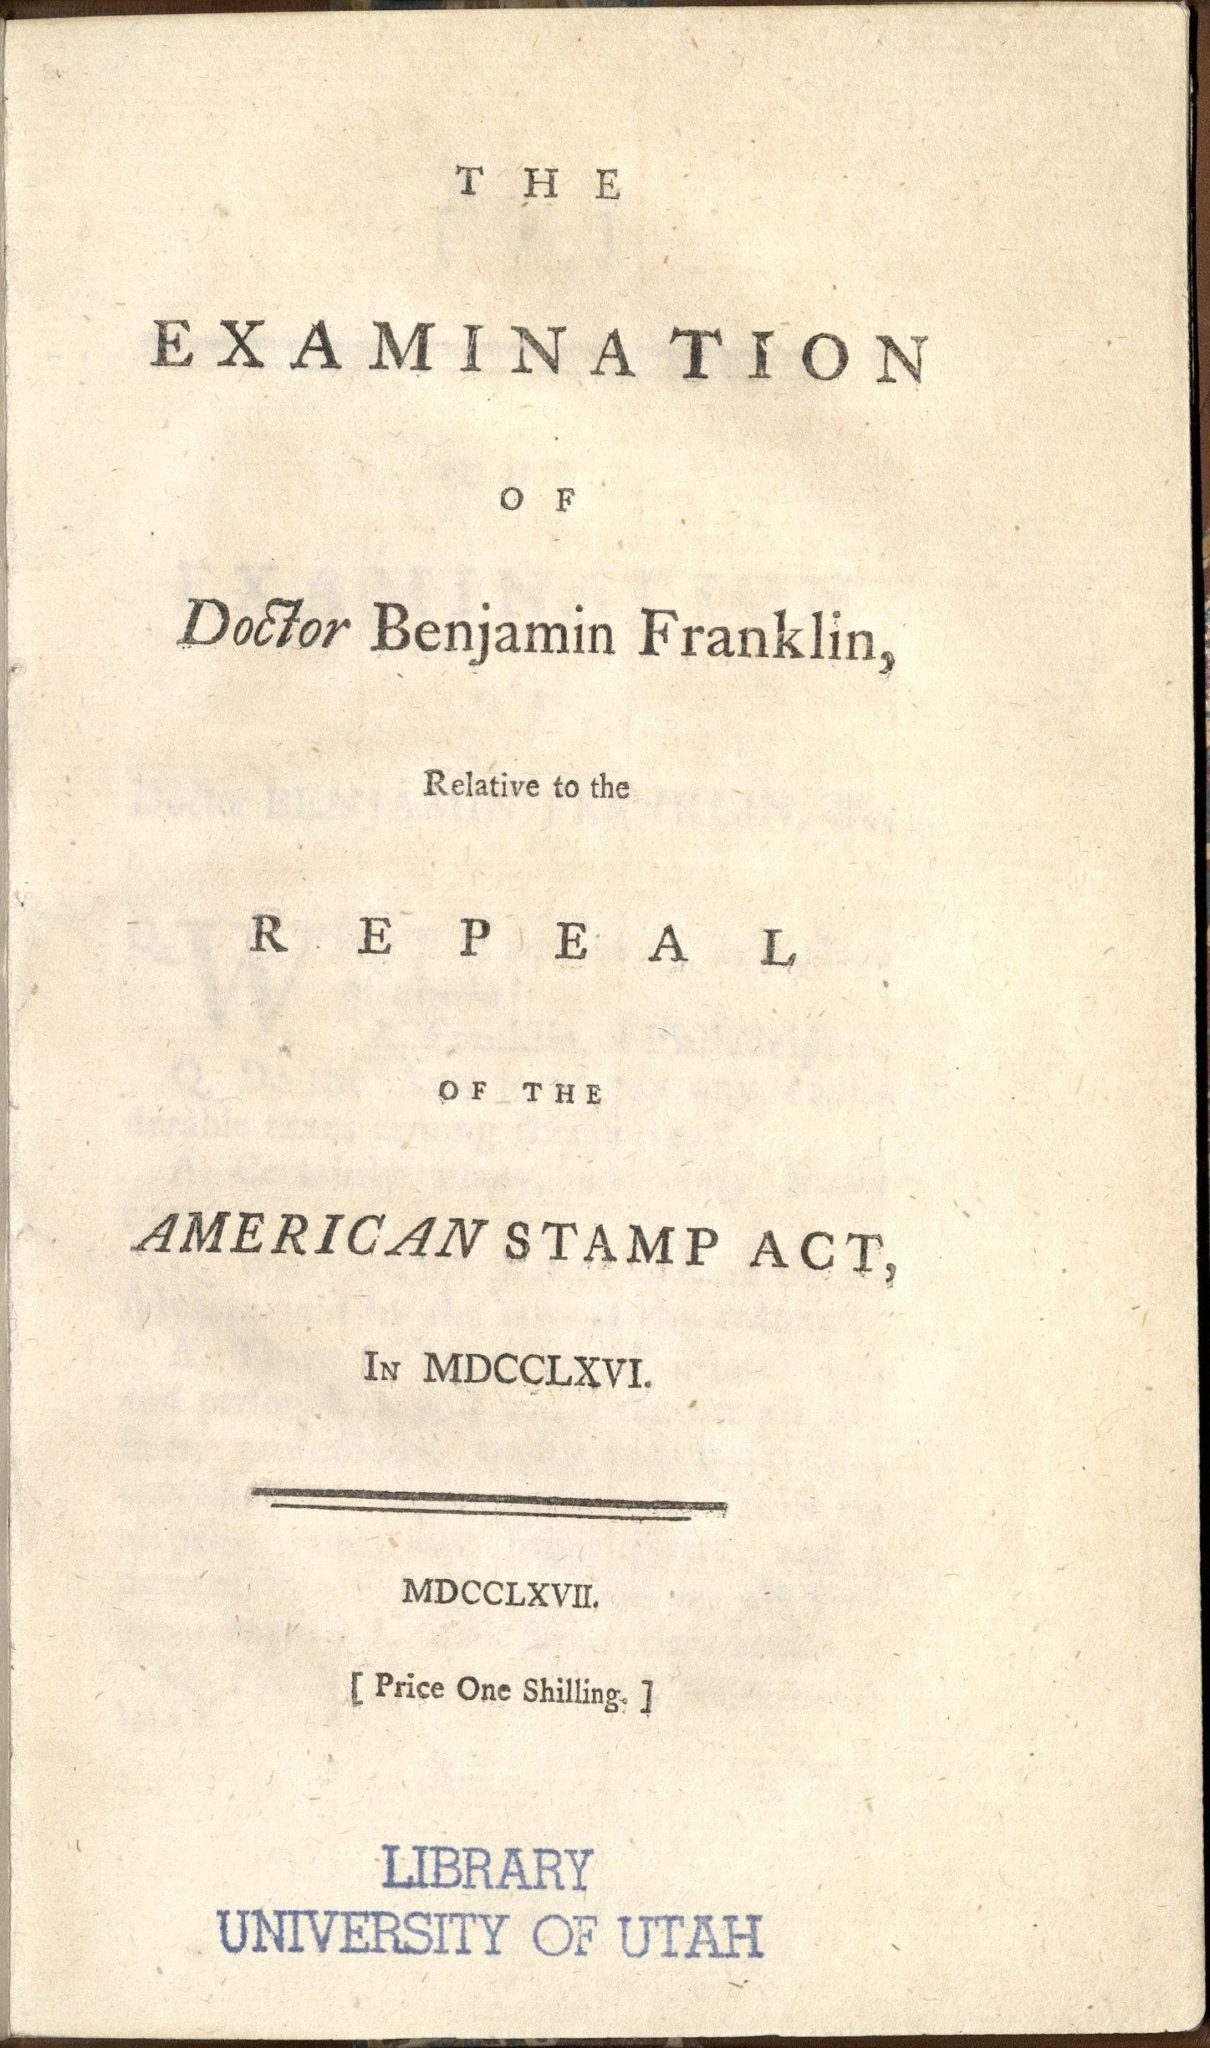 Examination of Doctor Benjamin Franklin, 1767